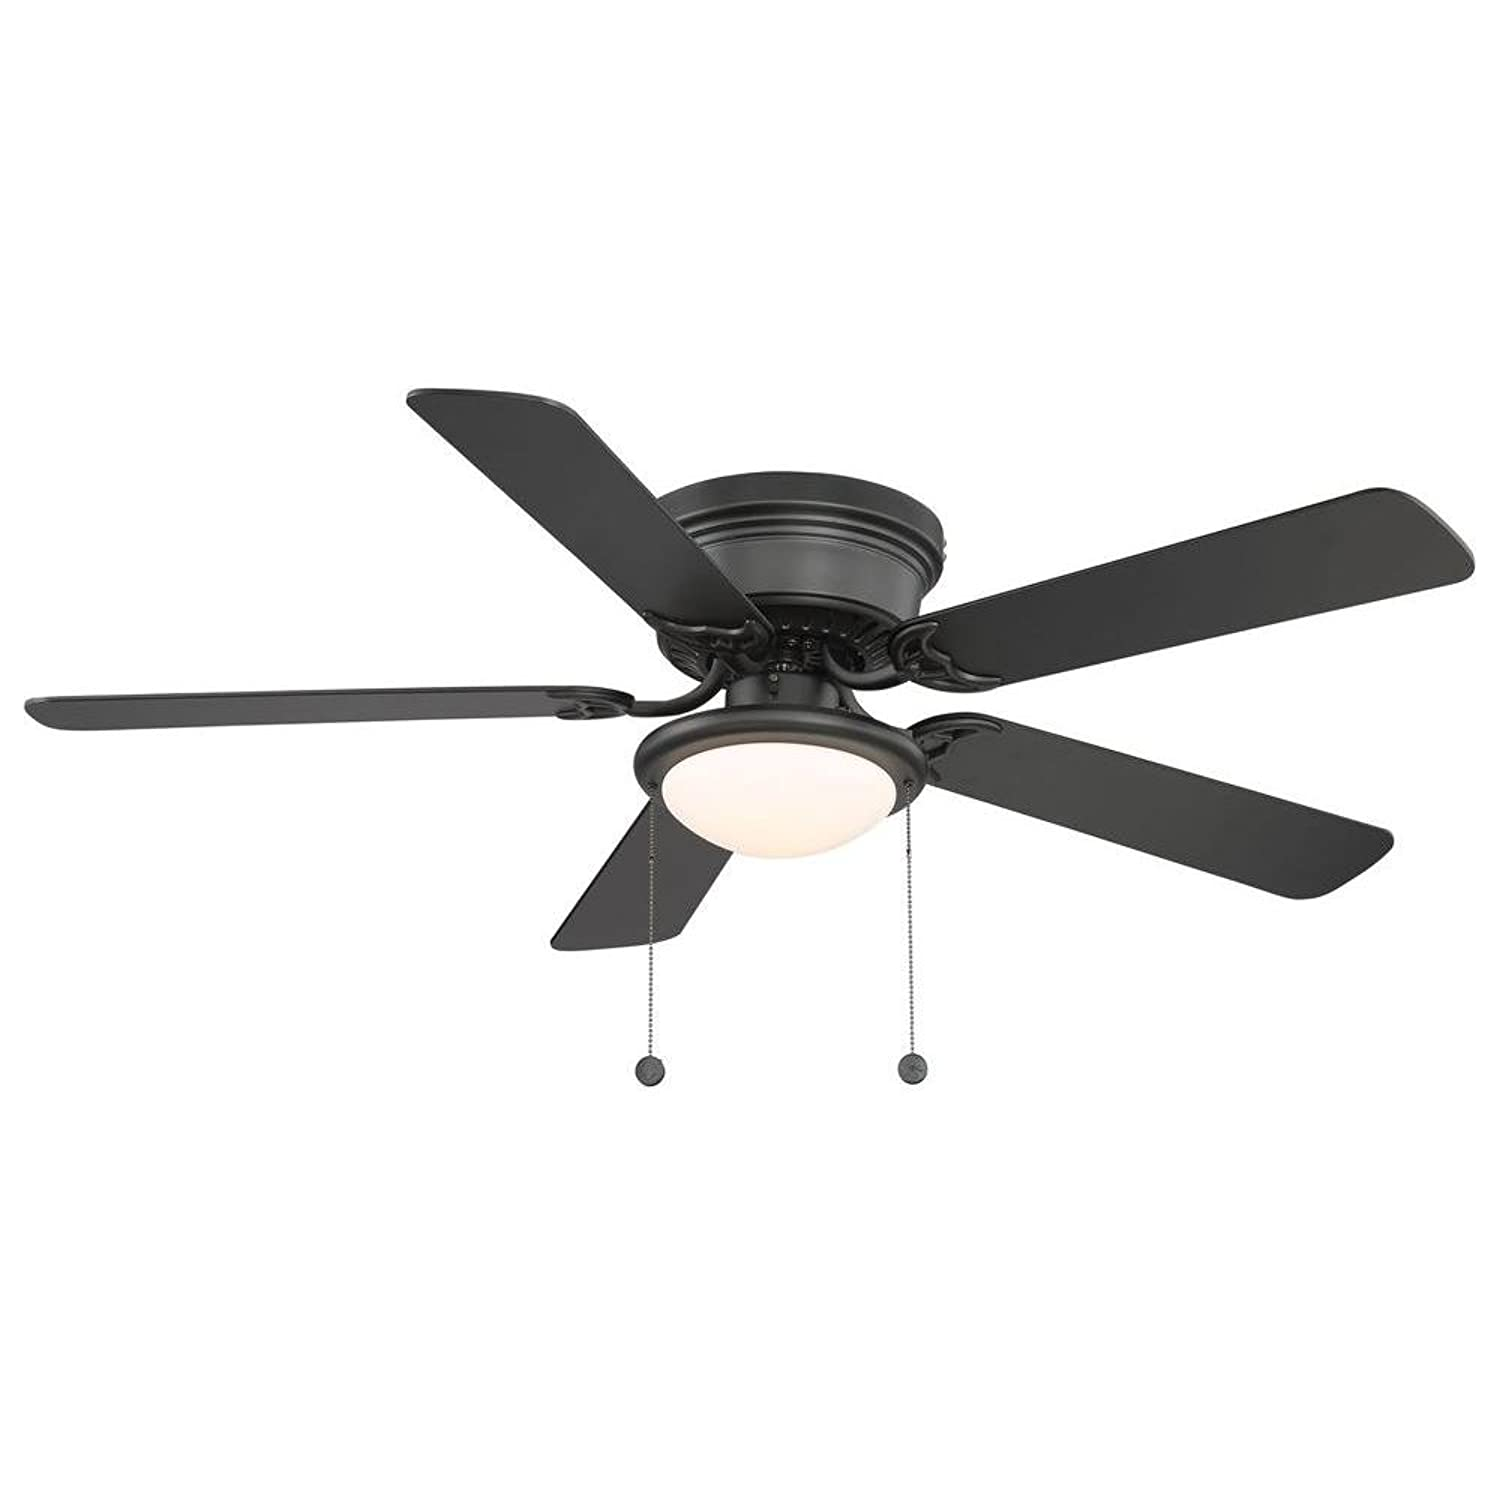 Amazon hampton bay hugger 52 in black ceiling fan black amazon hampton bay hugger 52 in black ceiling fan black reversable blades clothing mozeypictures Gallery